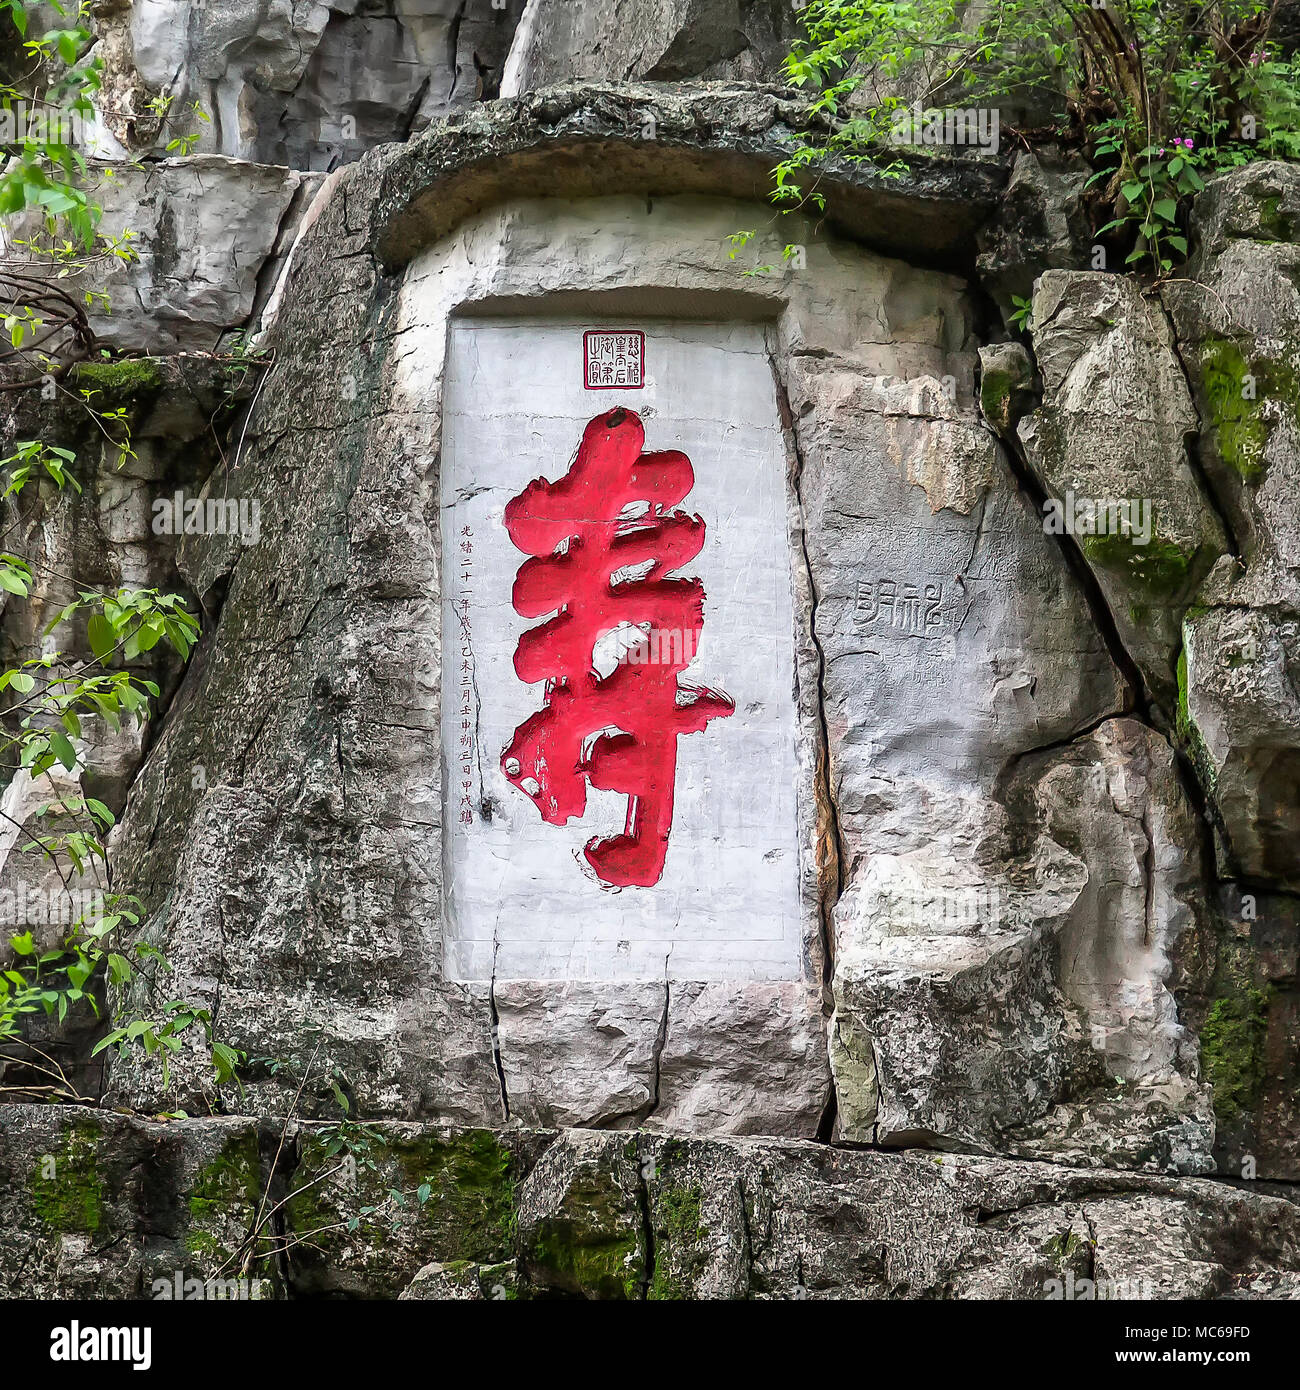 An inscription and stone carving at the base of Solitary Beauty Peak, Guilin, China. The red painted Chinese character is Shou, which means longevity. - Stock Image